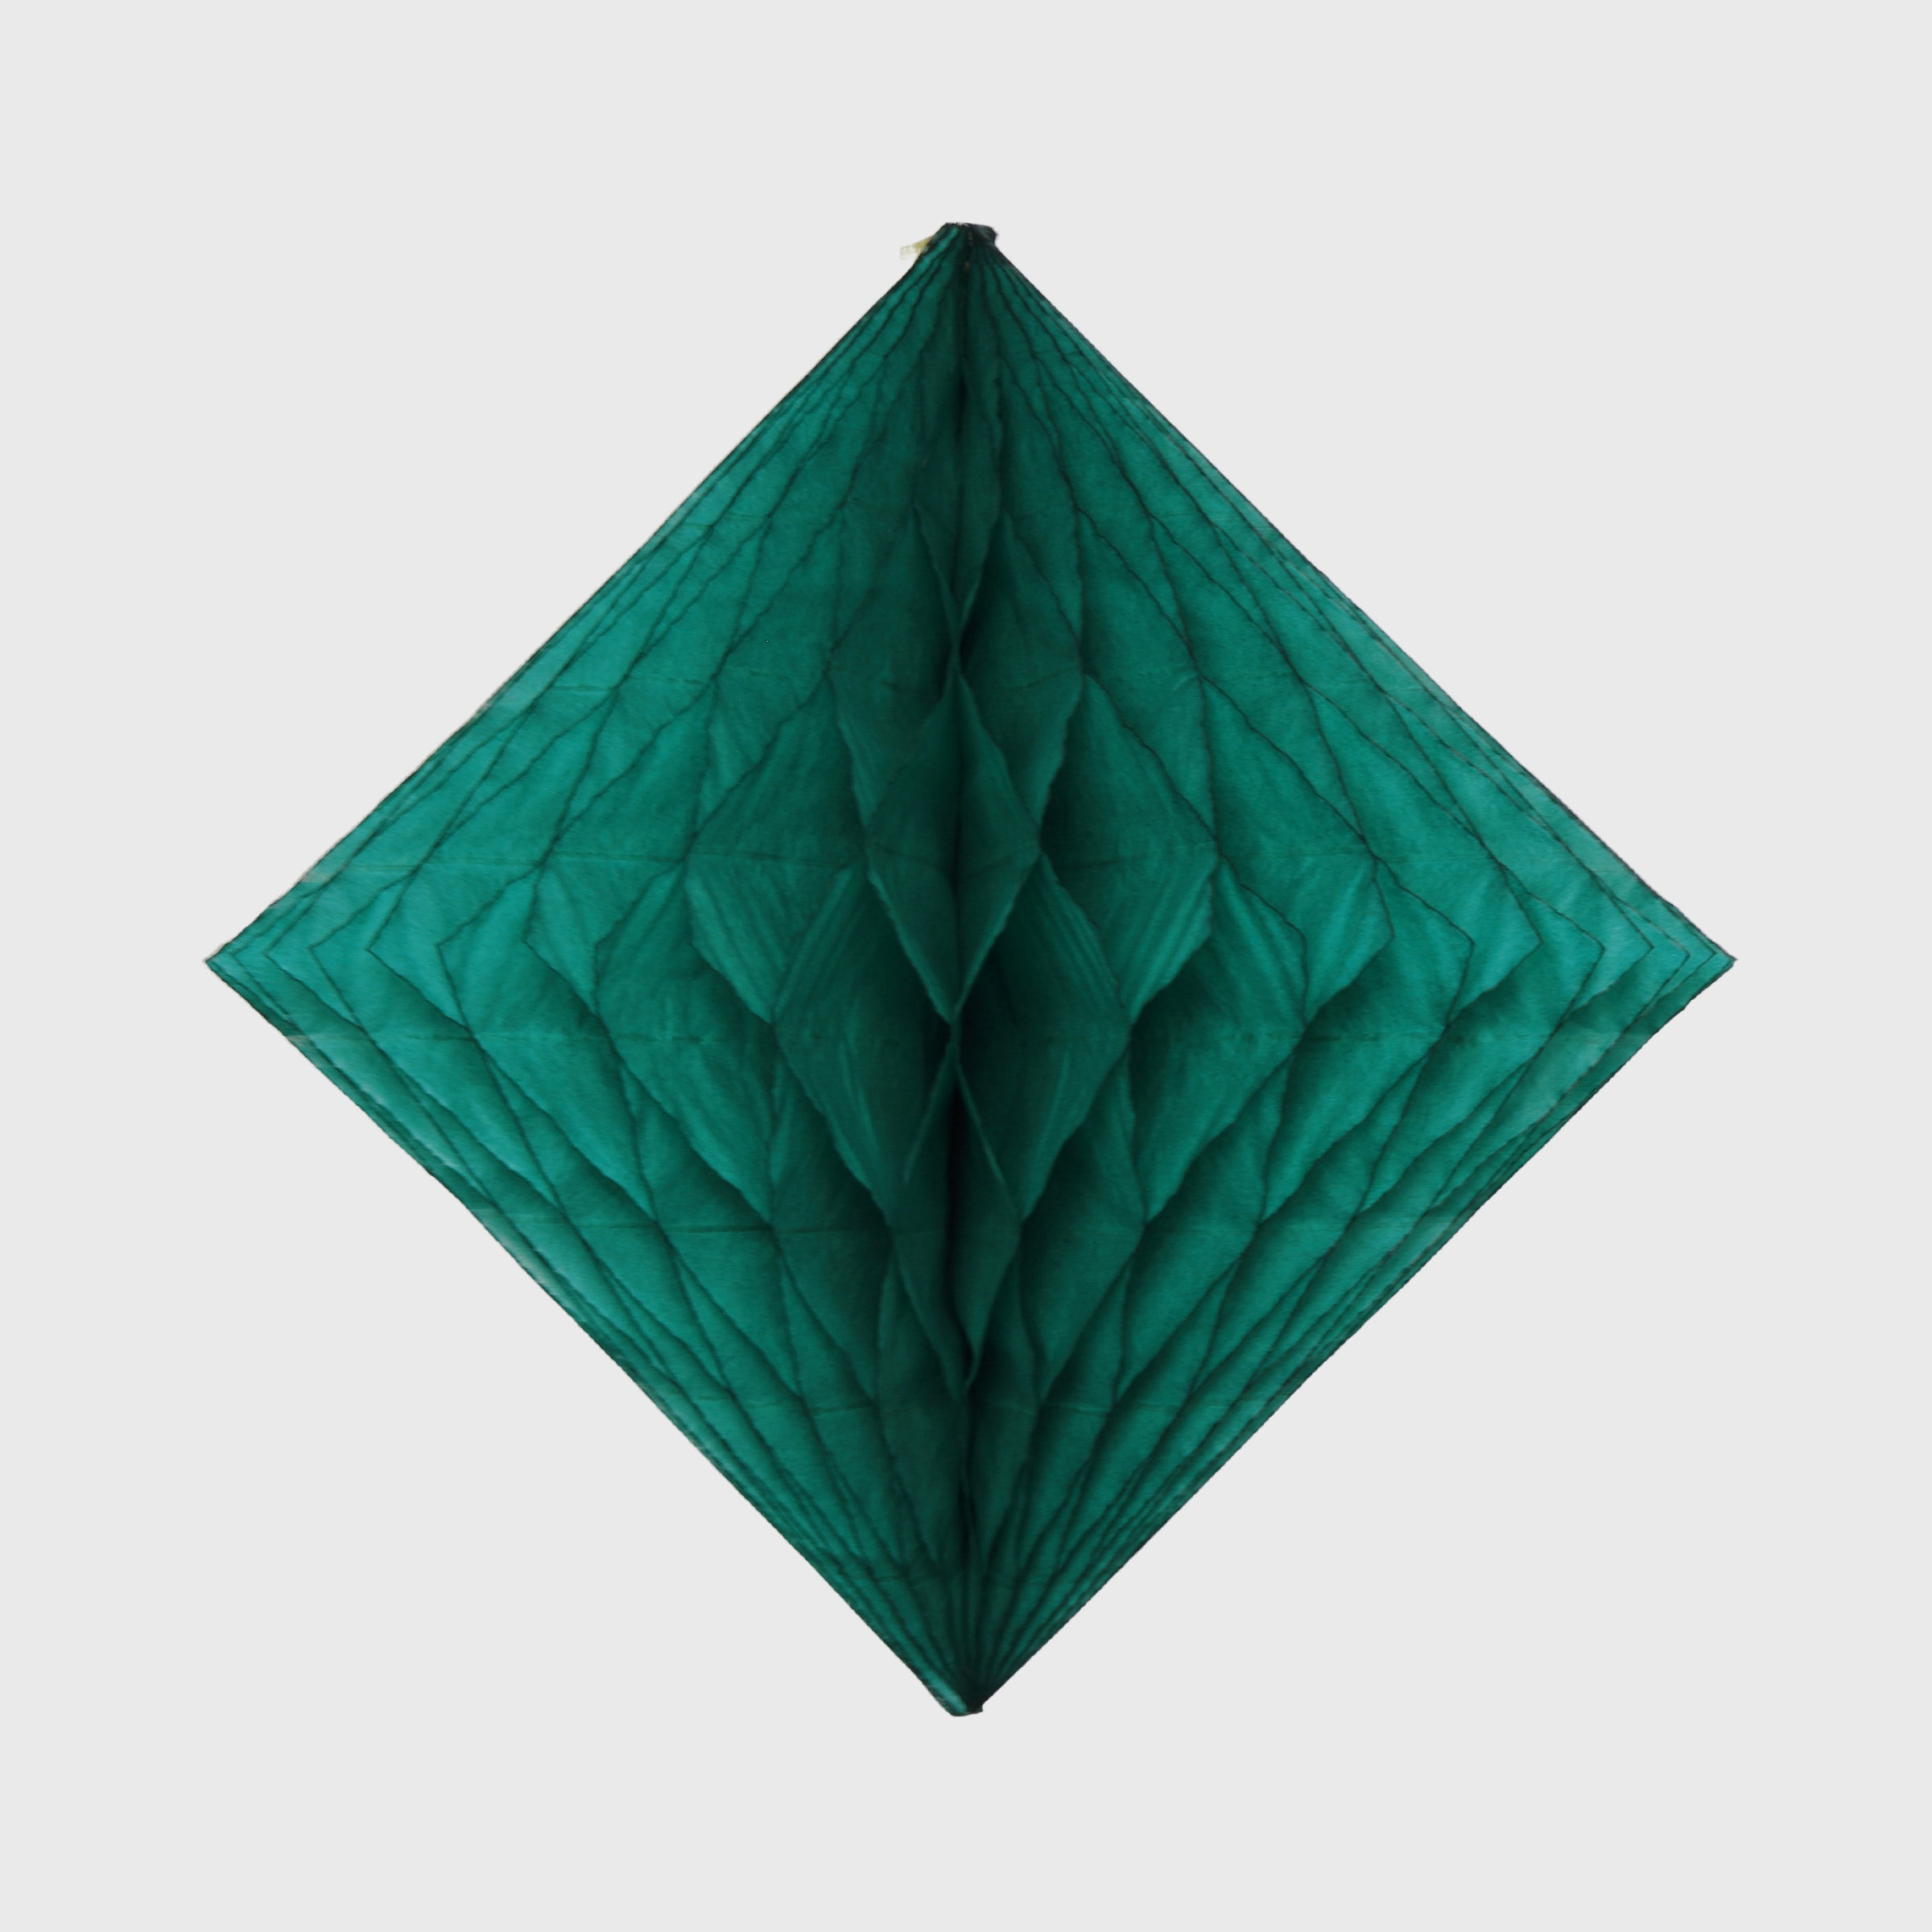 Honeycomb Diamond, Emerald